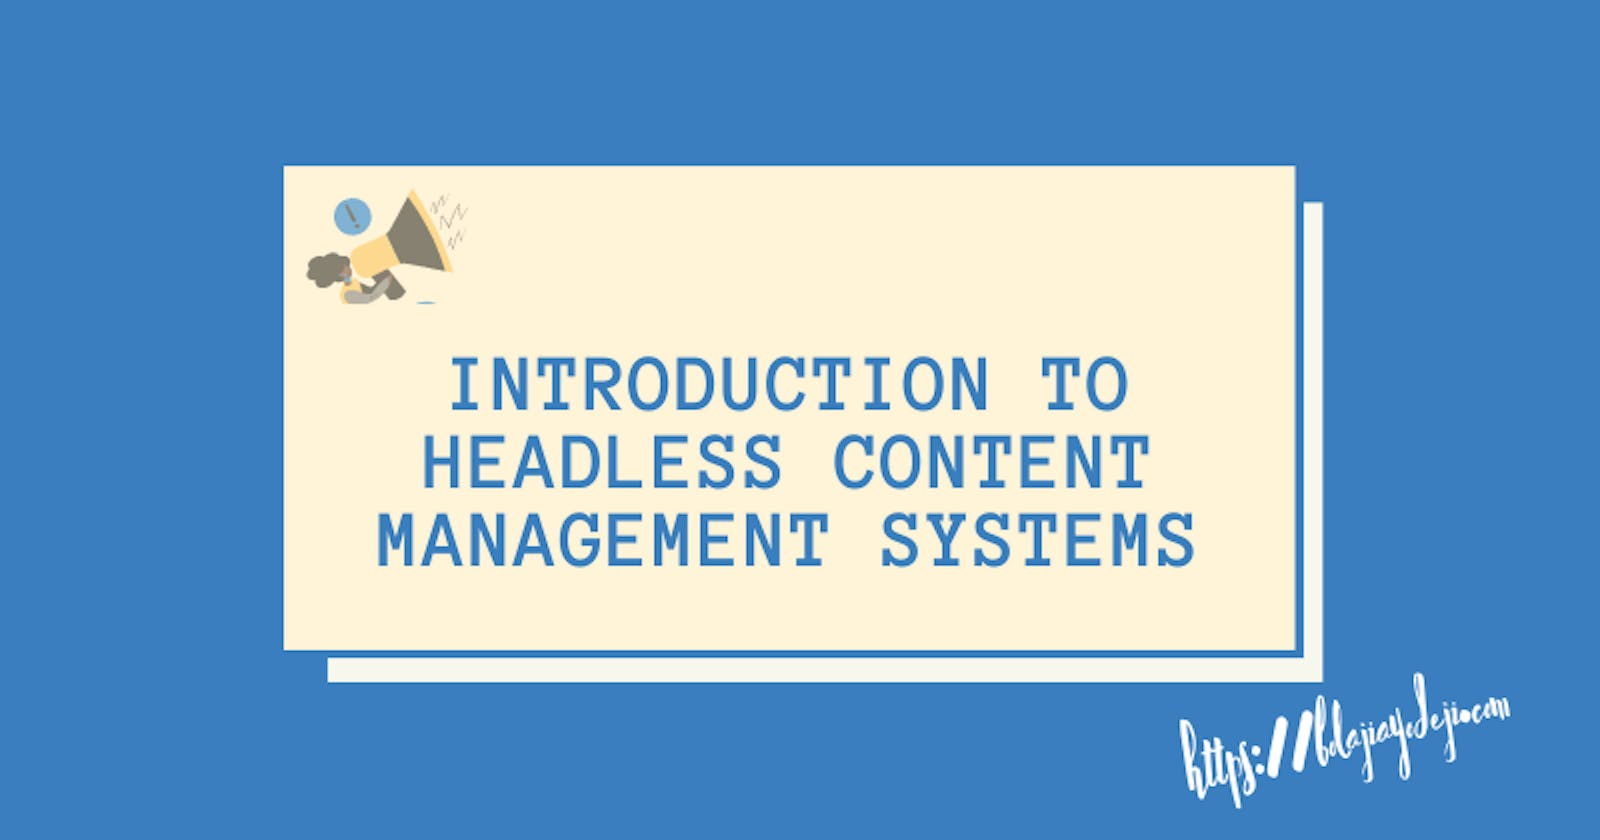 Introduction to Headless Content Management Systems